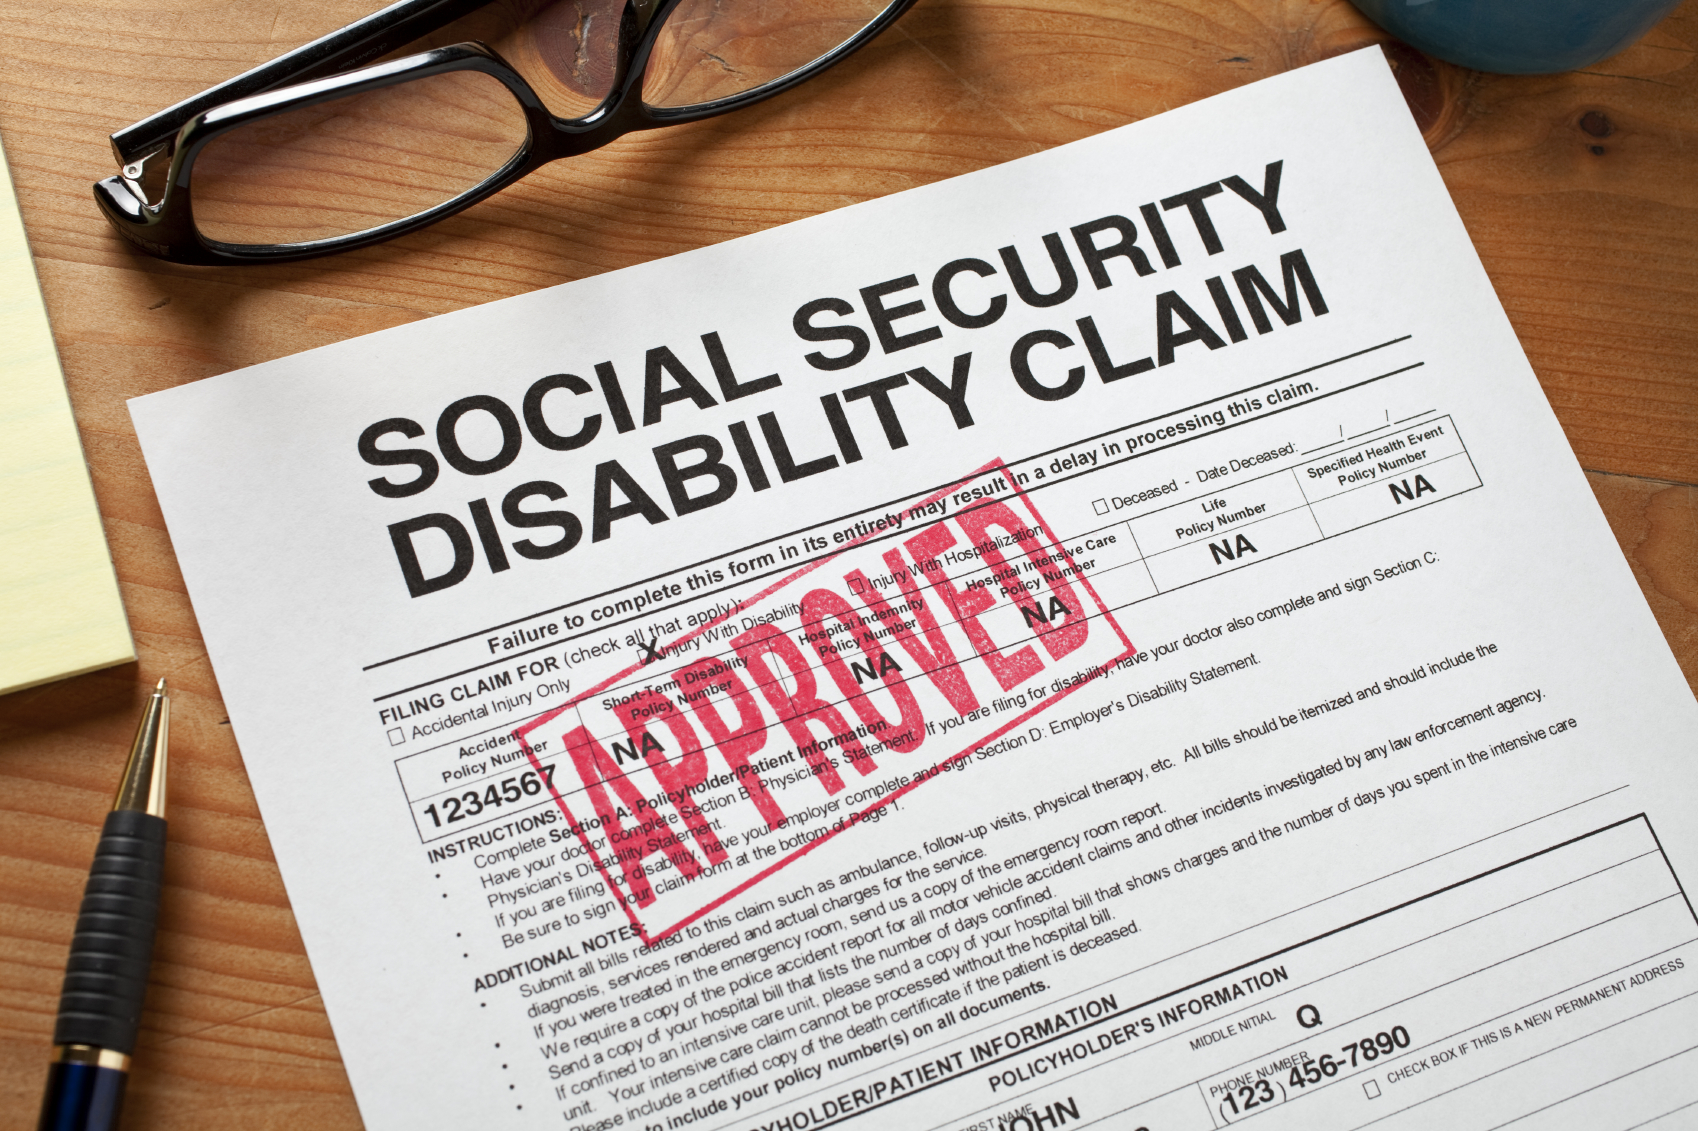 social security disability Last updated date: 11/21/2007 12:54:50 pm: department of health and human services disclaimer.